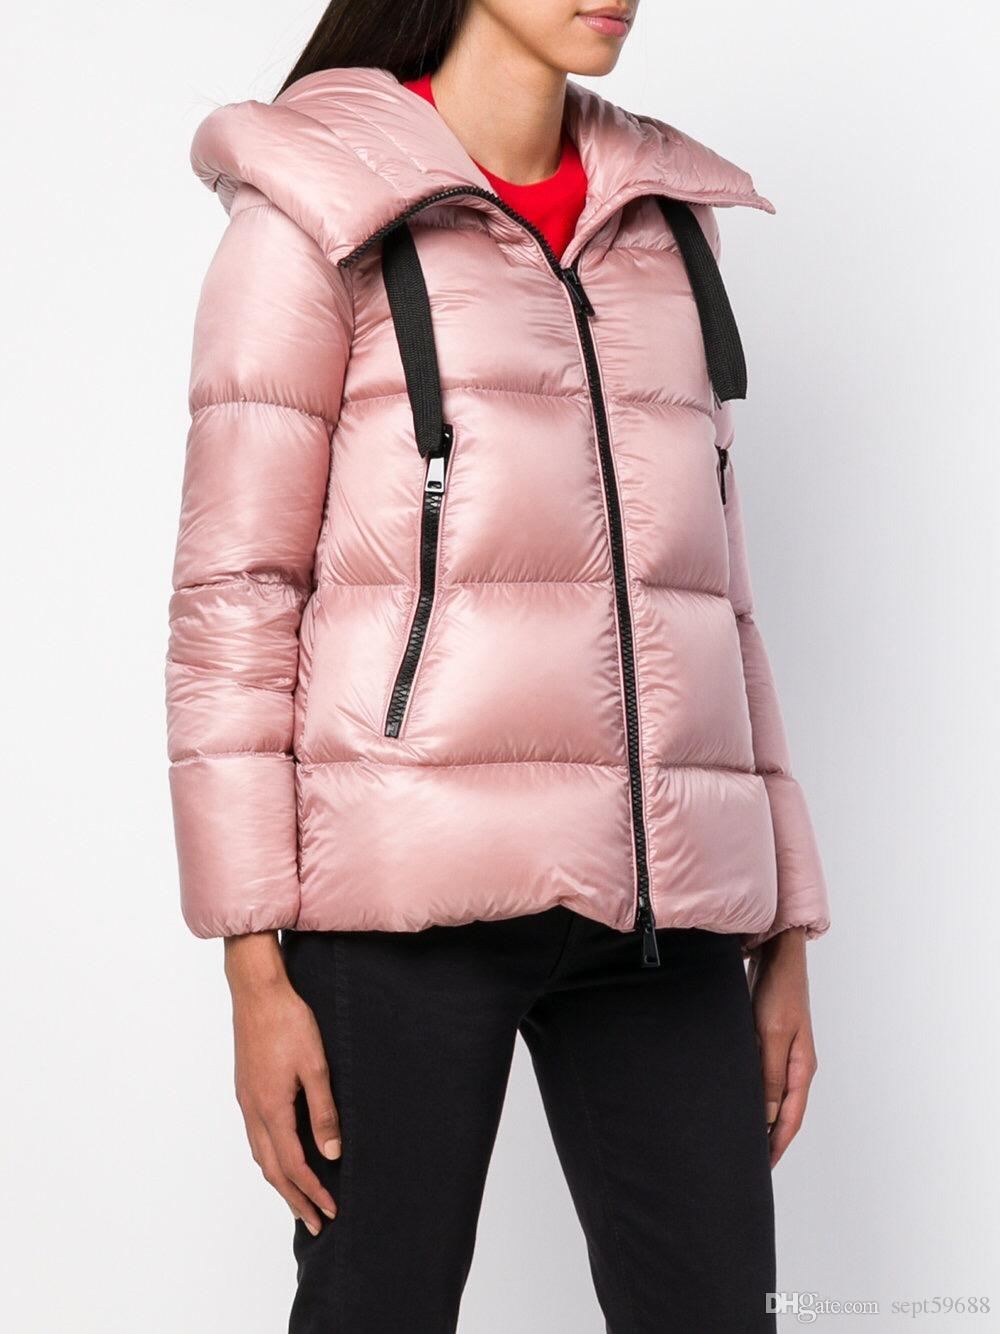 0a2878a42 2018 NEW M1 Fr woman Casual hooded down jacket high quality white duck  winter parkas brand design winter outerwear